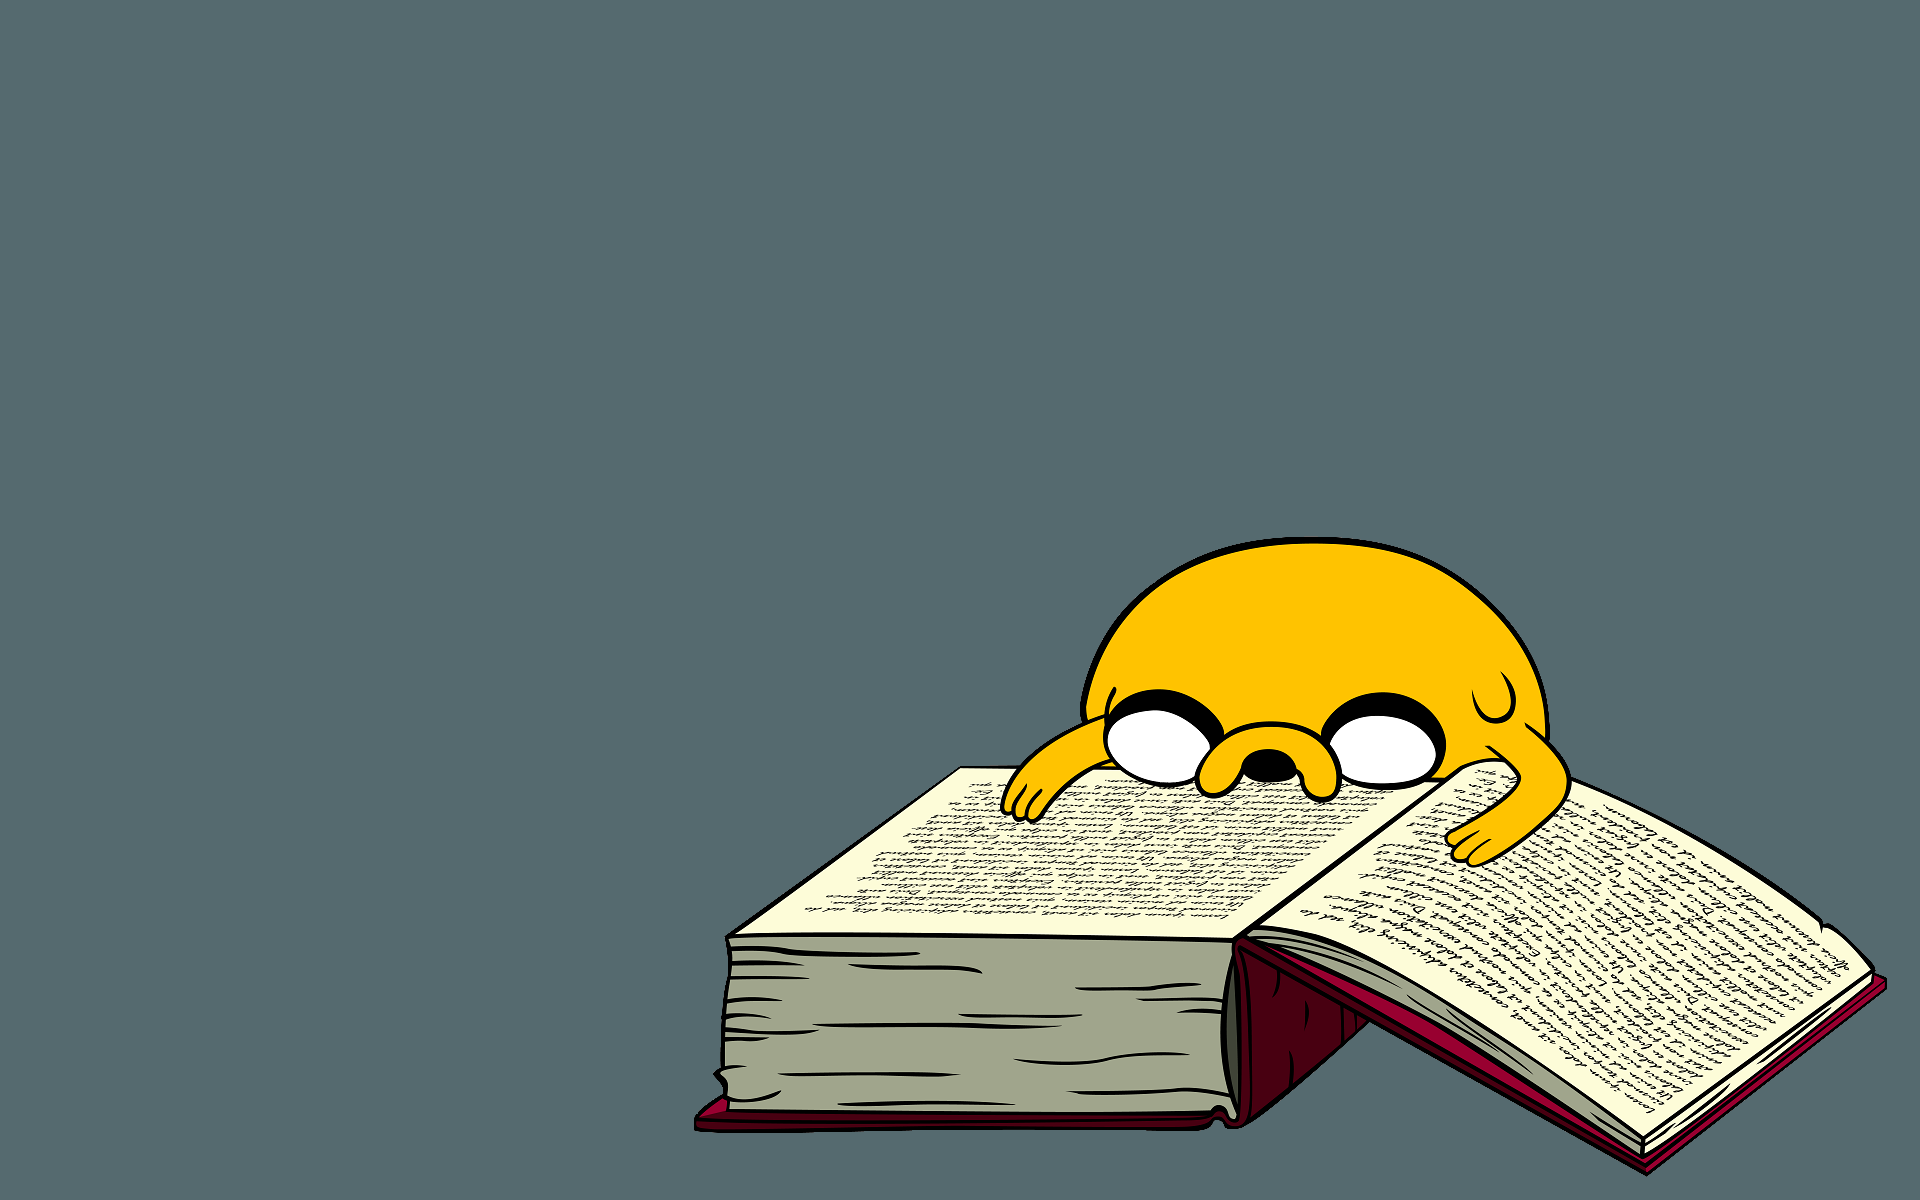 Tv Show Adventure Time Book Cartoon Humor Funny Cute Jake The Dog Wallpap Adventure Time Wallpaper Cute Laptop Wallpaper Computer Wallpaper Desktop Wallpapers